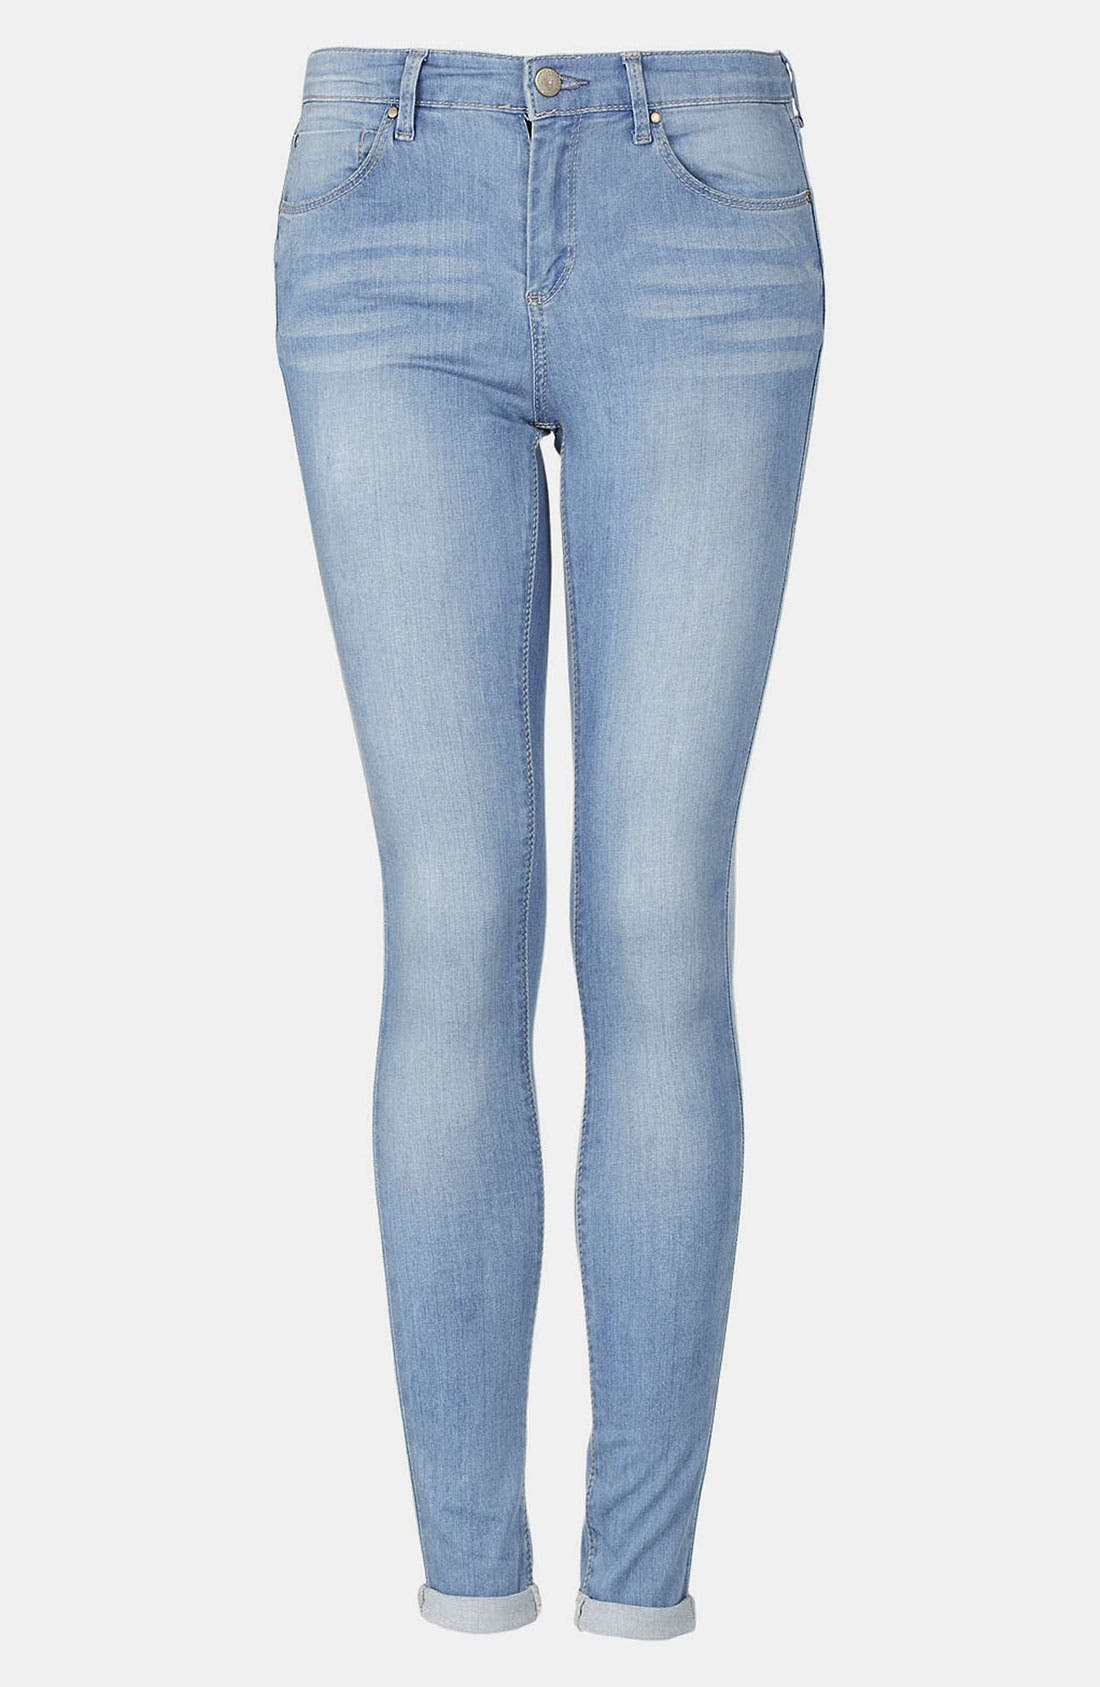 Main Image - Topshop Moto 'Leigh' Bleach Wash Skinny Jeans (Regular & Short)